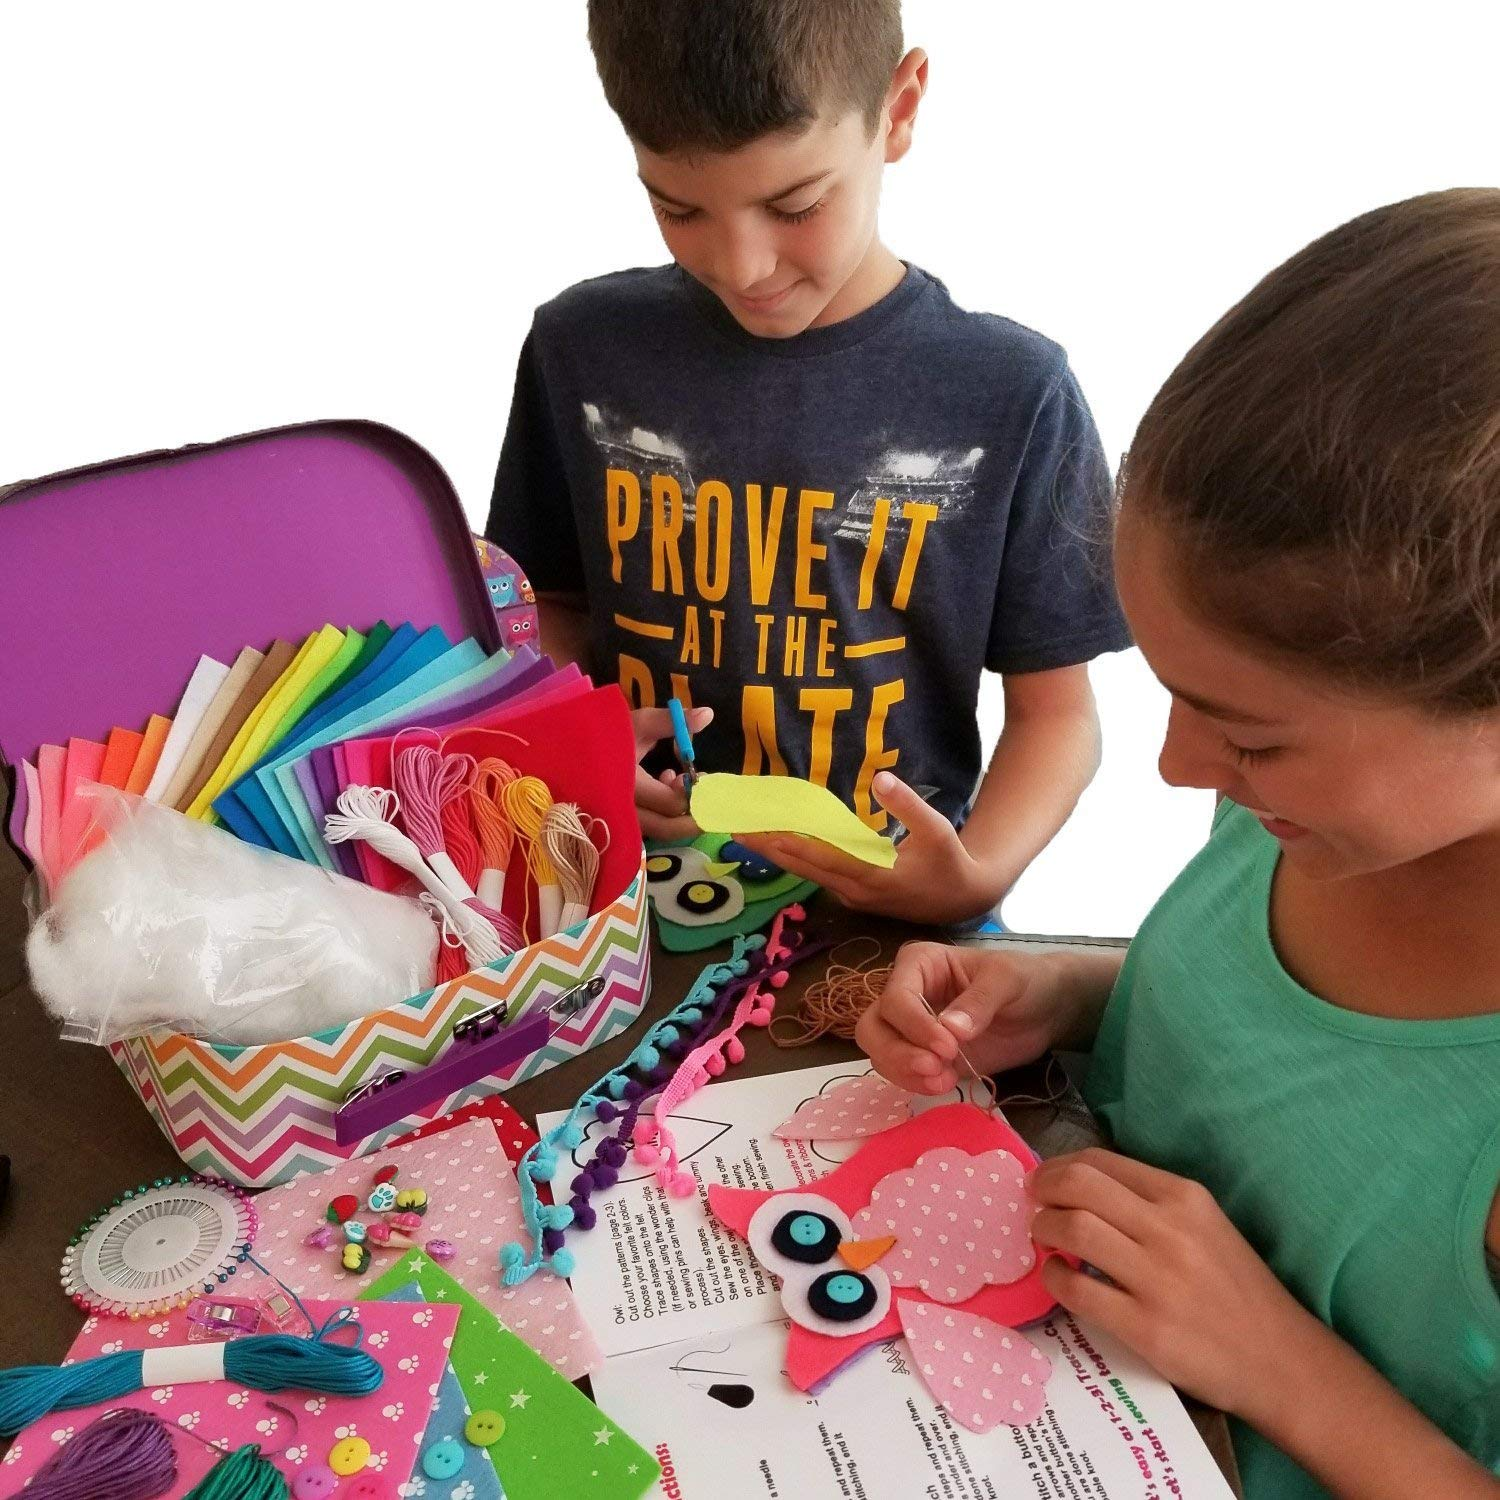 Hand Sewing Projects For 10 Year Olds Sewenir Sewing Projects